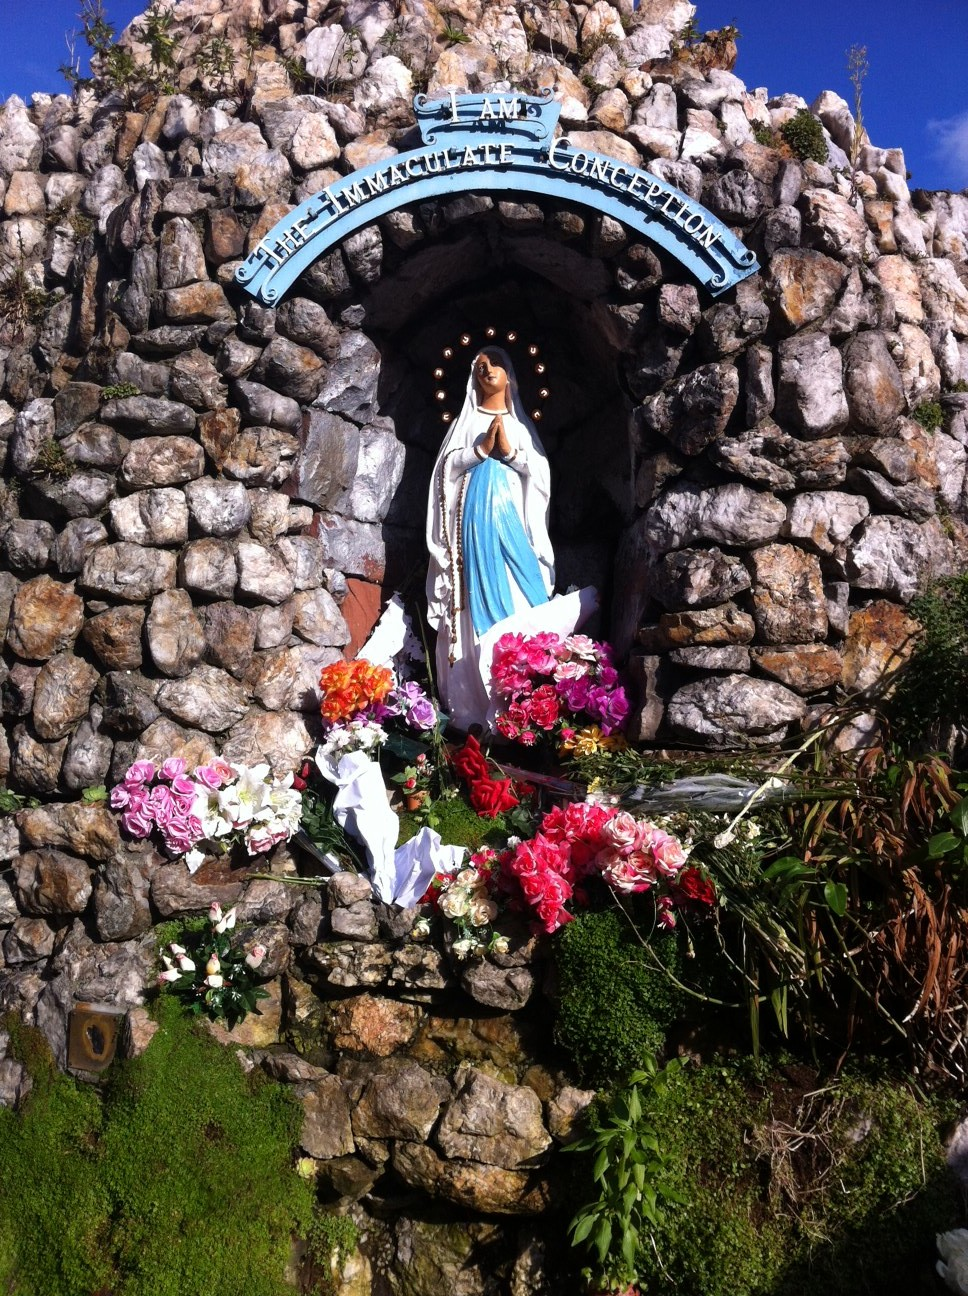 Our Lady of Immaculate conception grotto.